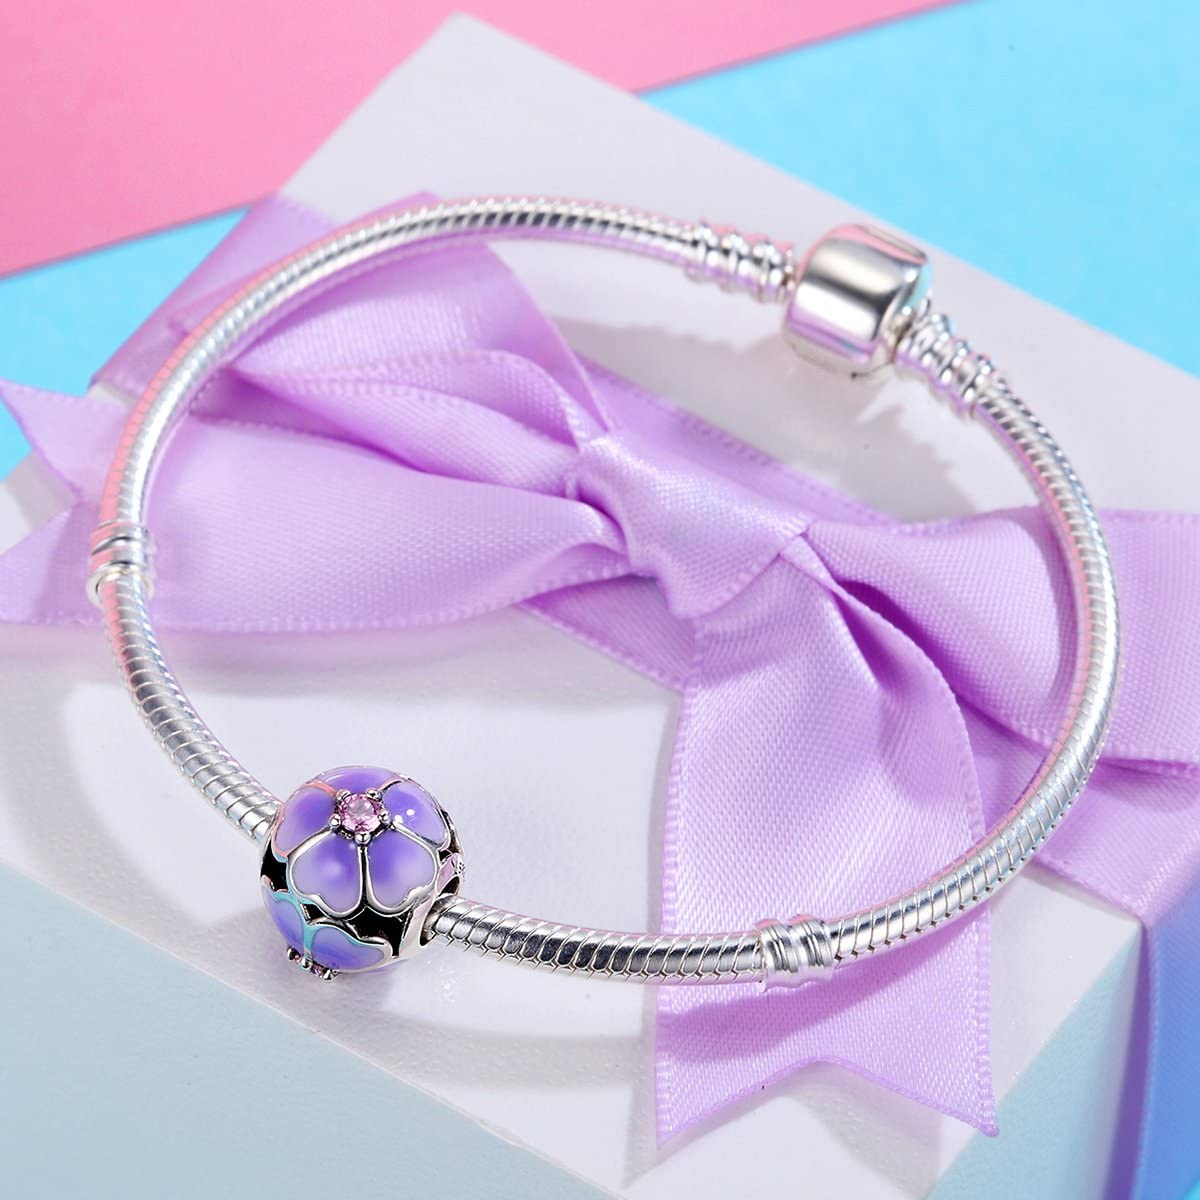 The Kiss Nature Blessing Daisy Flower 925 Sterling Silver Bead Fits European Charm Bracelet